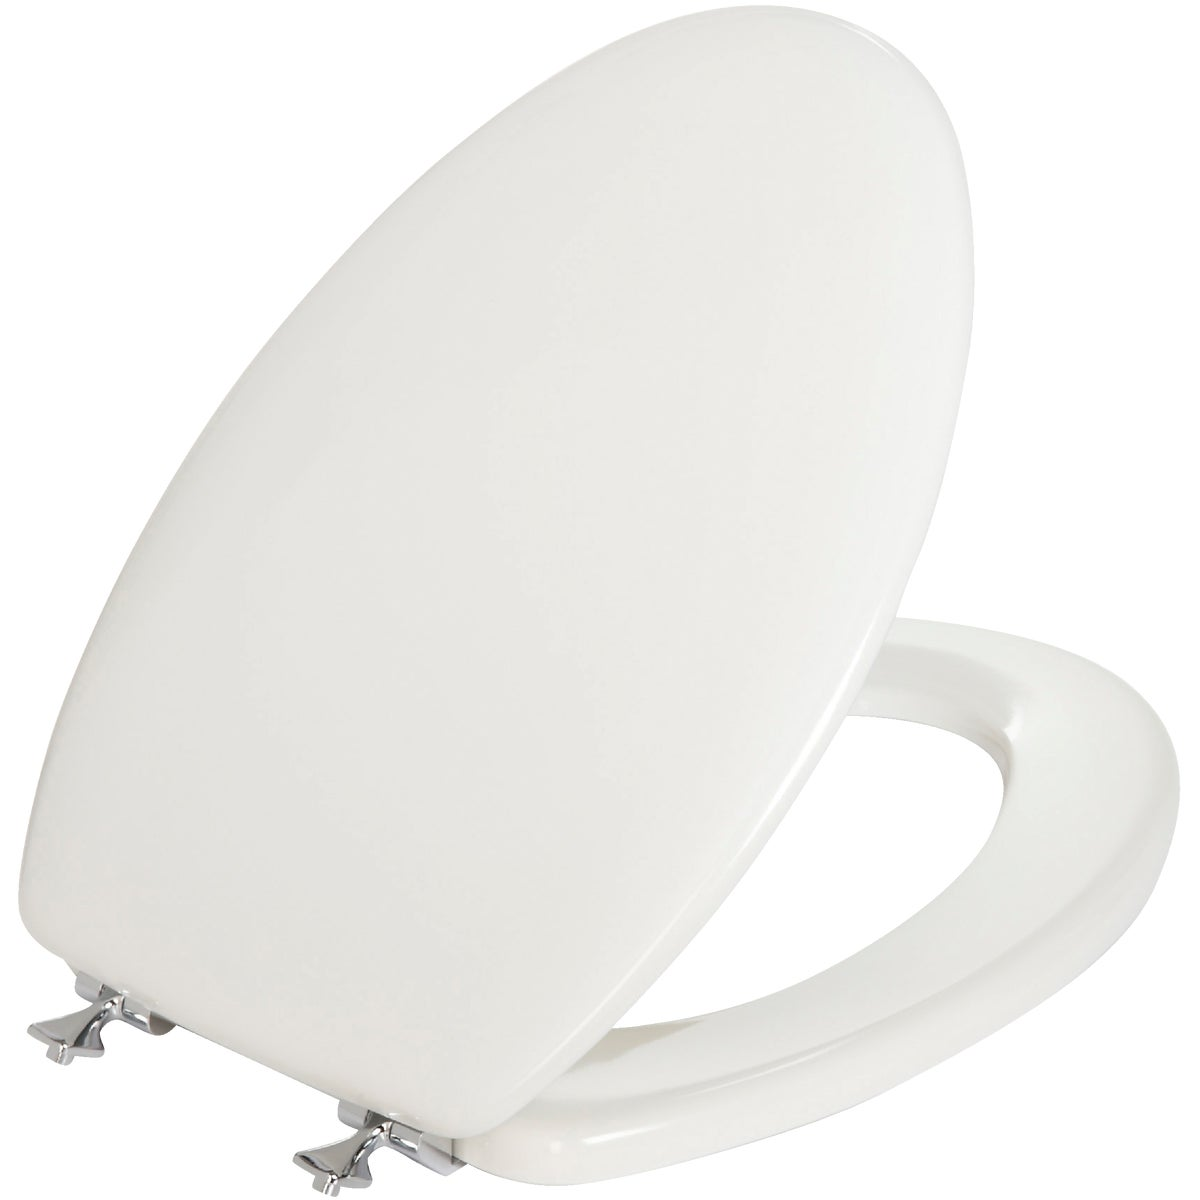 WHITE WOOD ELONG SEAT - 144CP-000 by Bemis Mfg